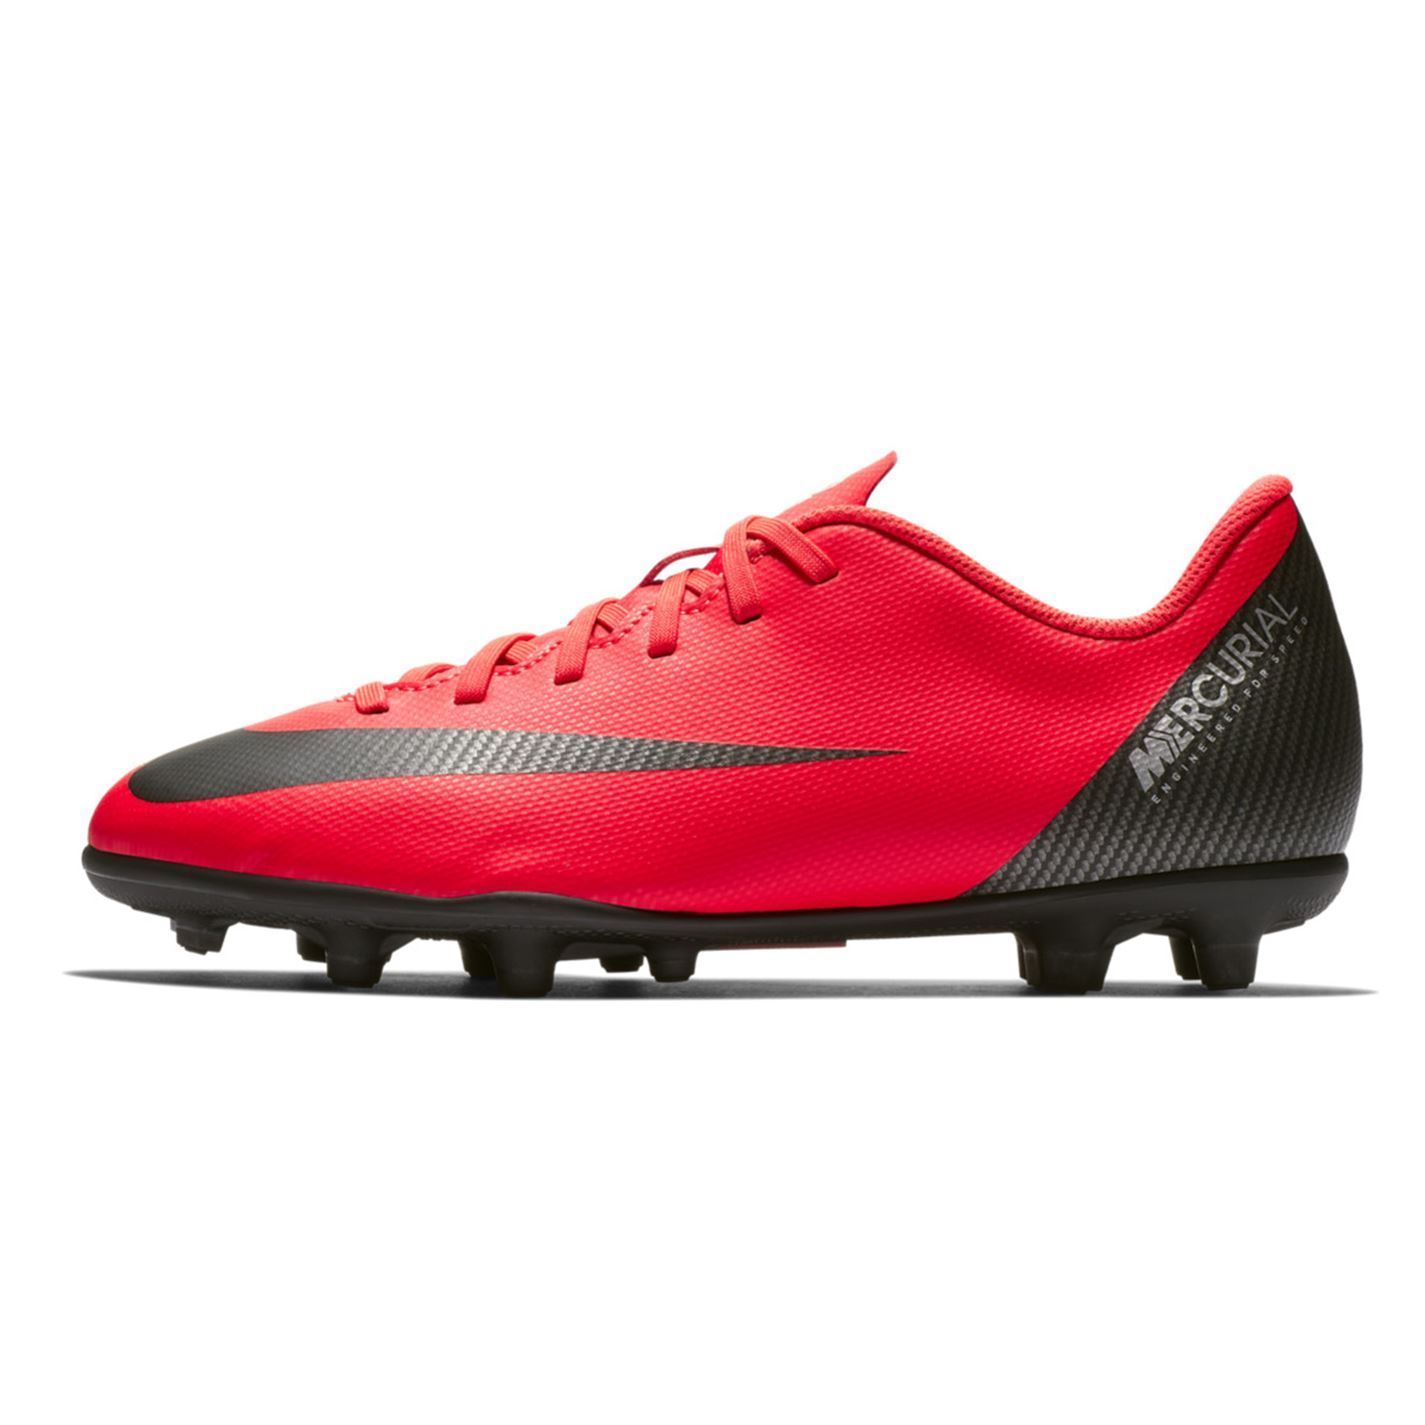 c9253328199 ... Nike Mercurial Vapor Club CR7 FG Football Boots Juniors Red Soccer Shoes  Cleats ...